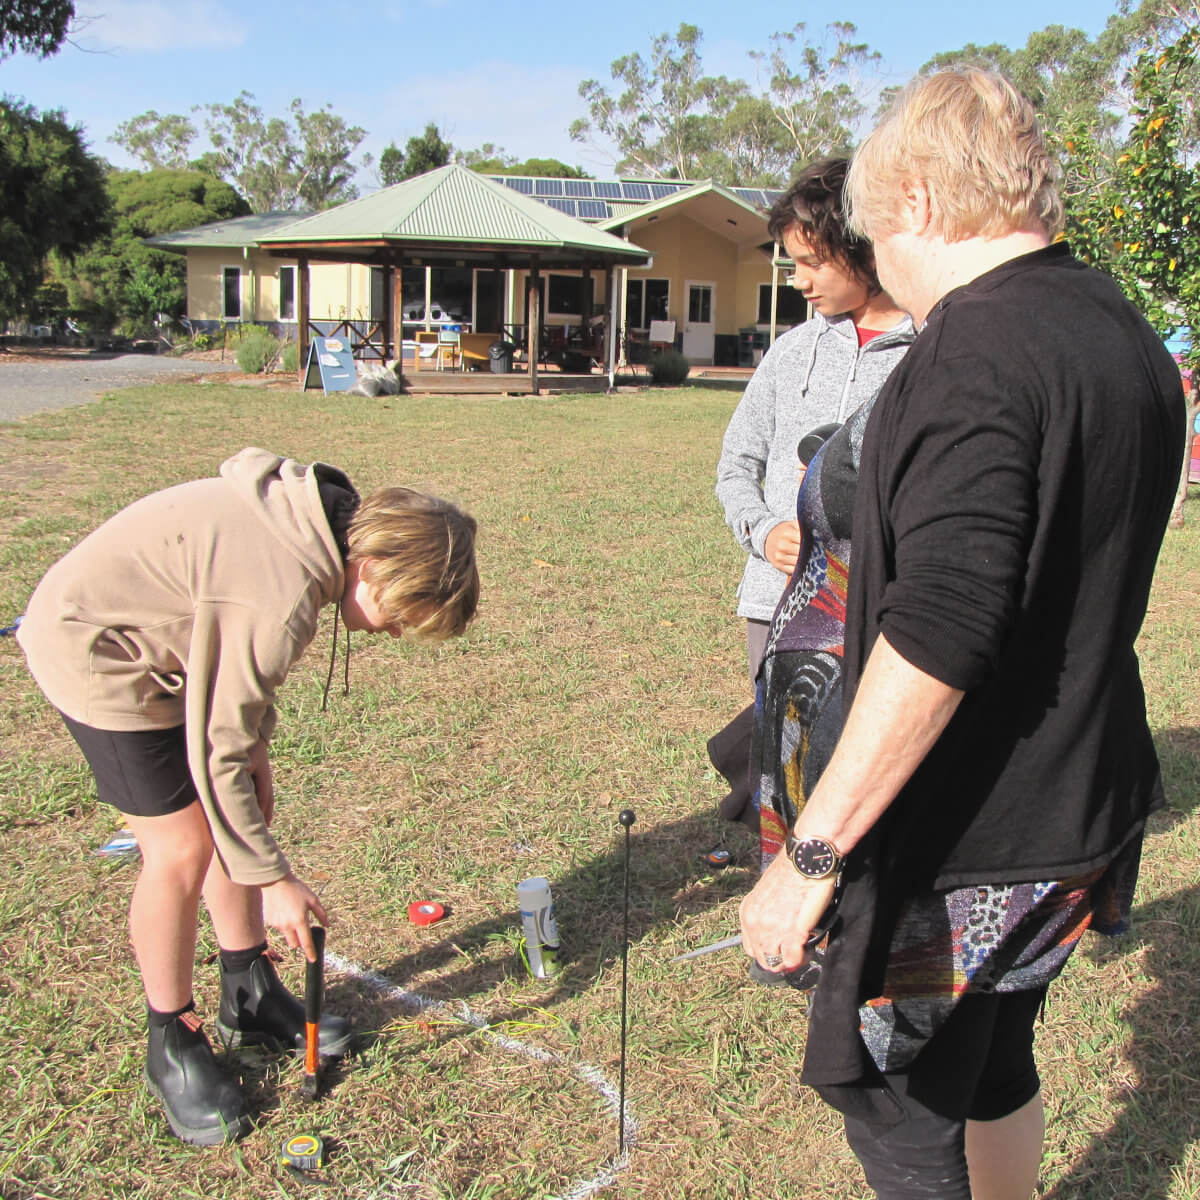 Primary School Reports - Doing Maths Outside